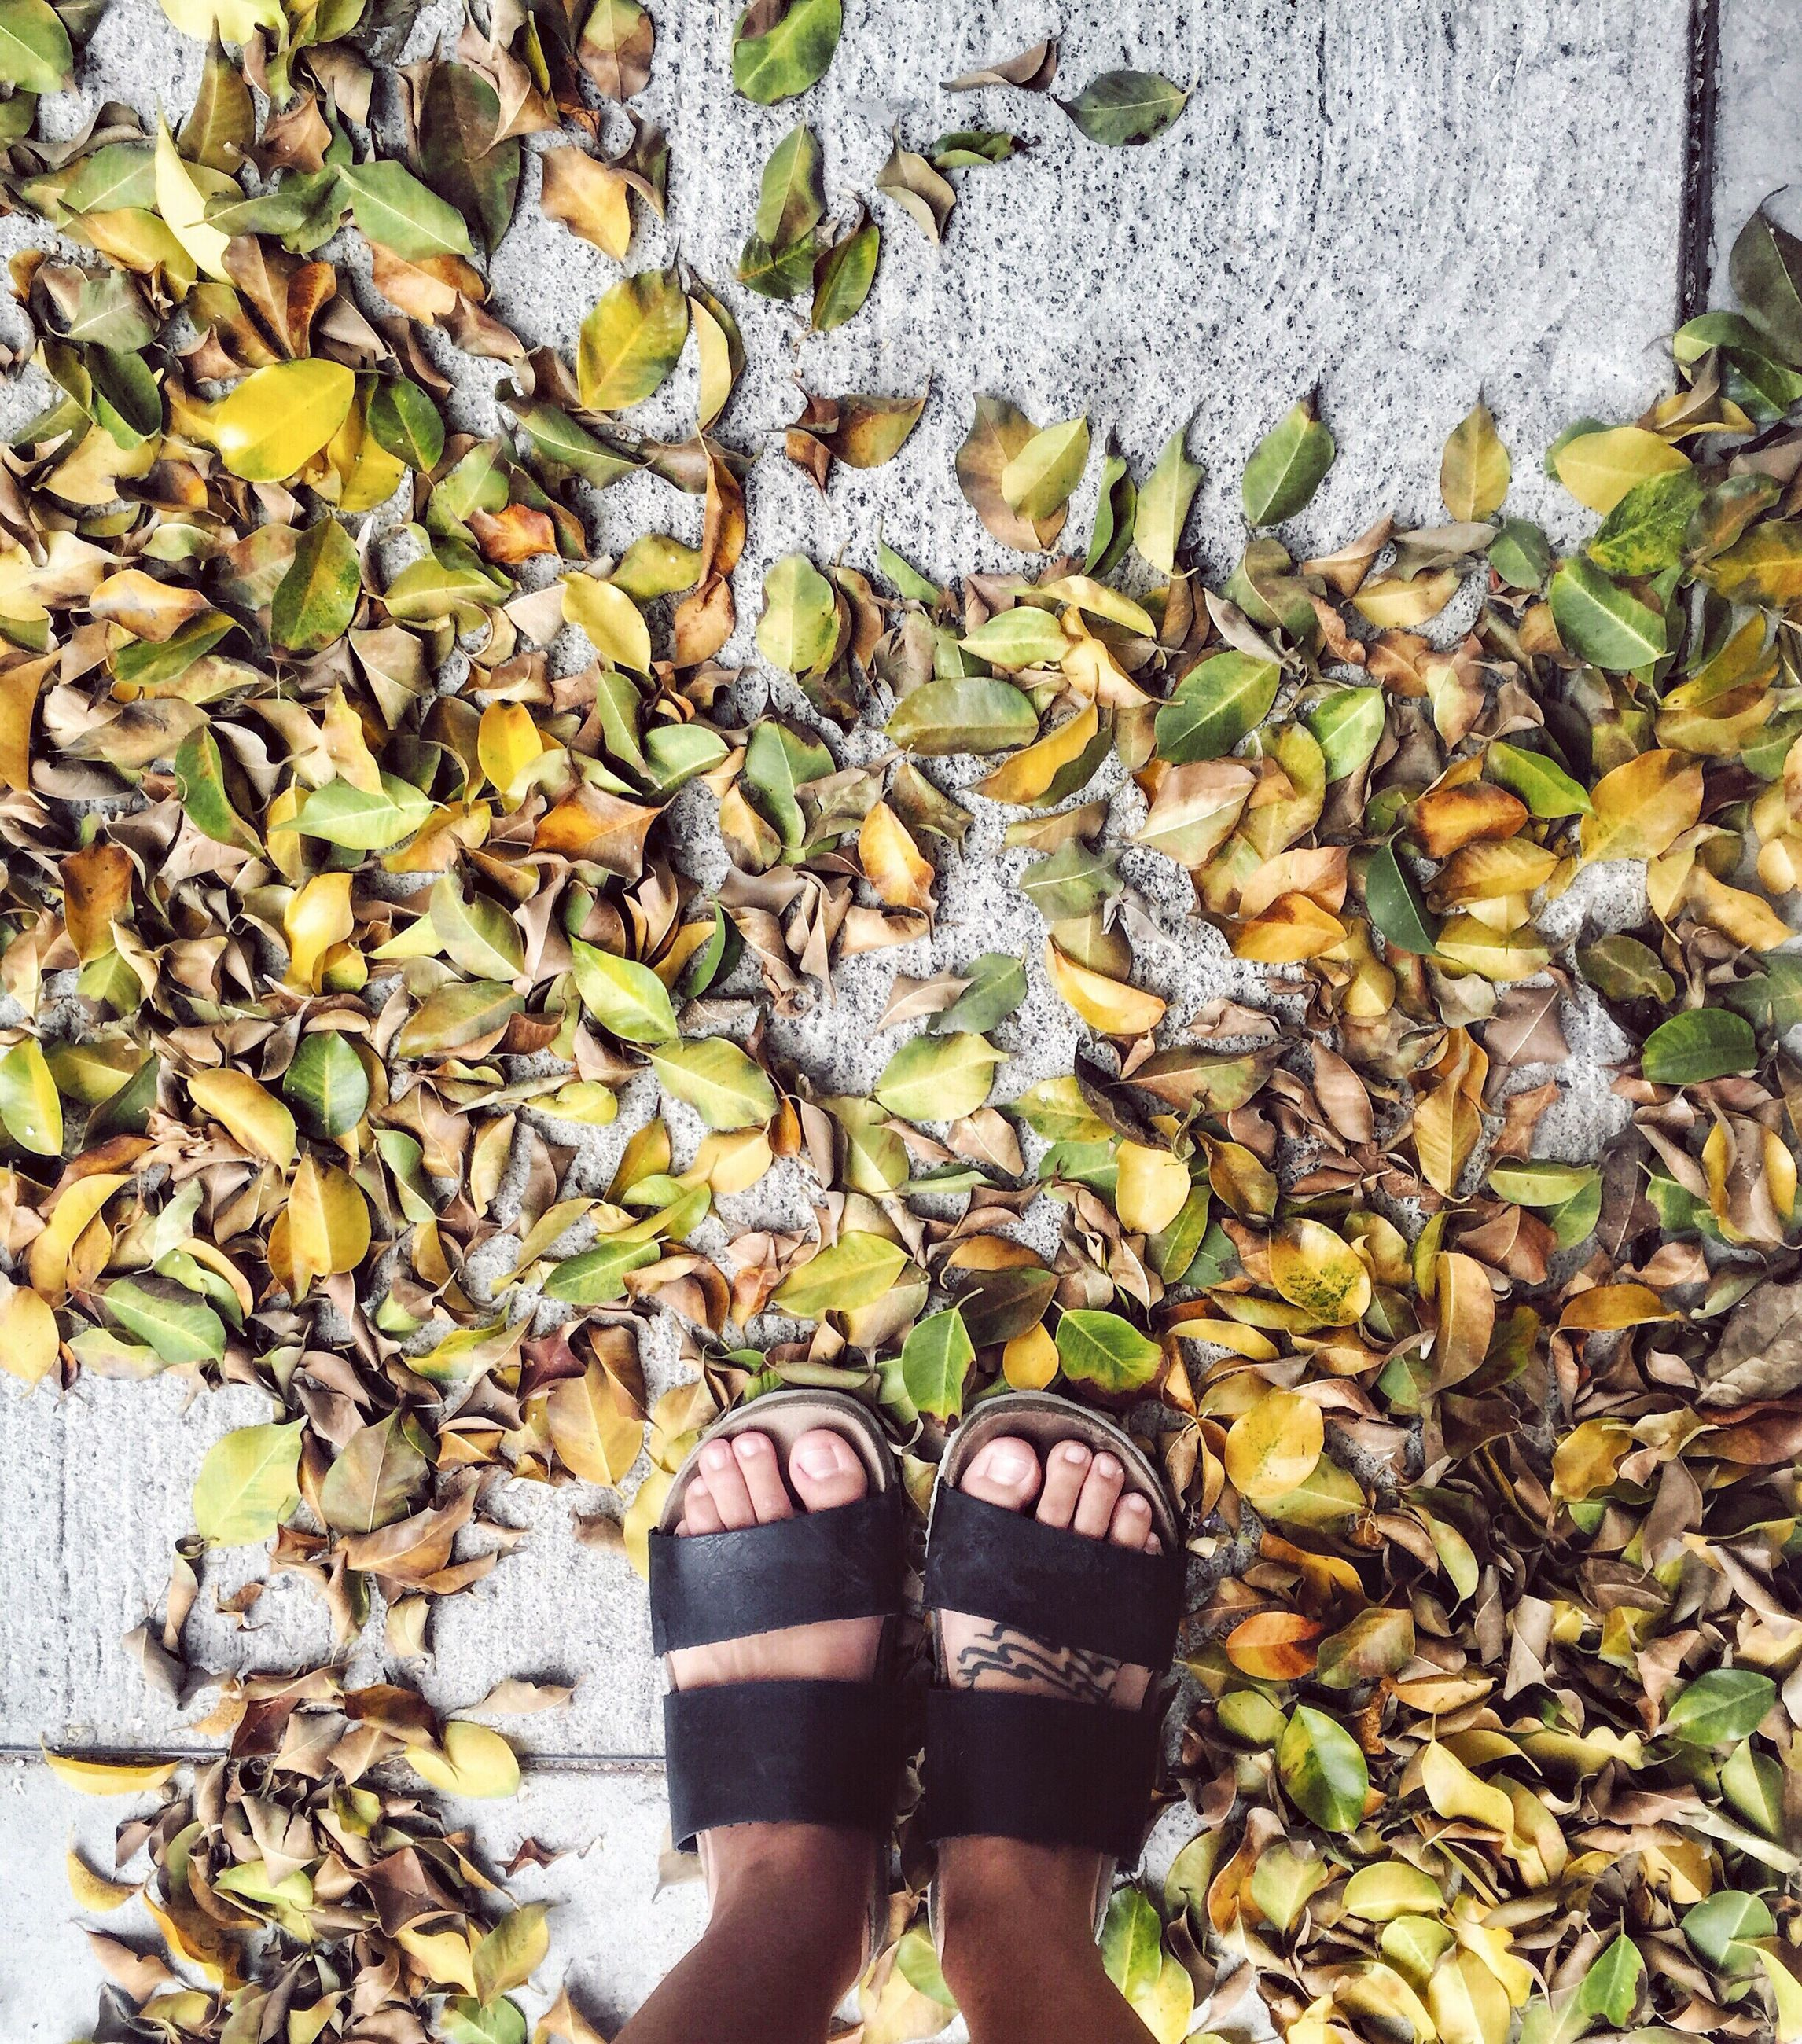 low section, shoe, leaf, person, autumn, standing, change, footwear, personal perspective, season, dry, pair, covering, field, leaves, human foot, plant, yellow, day, nature, fallen, outdoors, tranquility